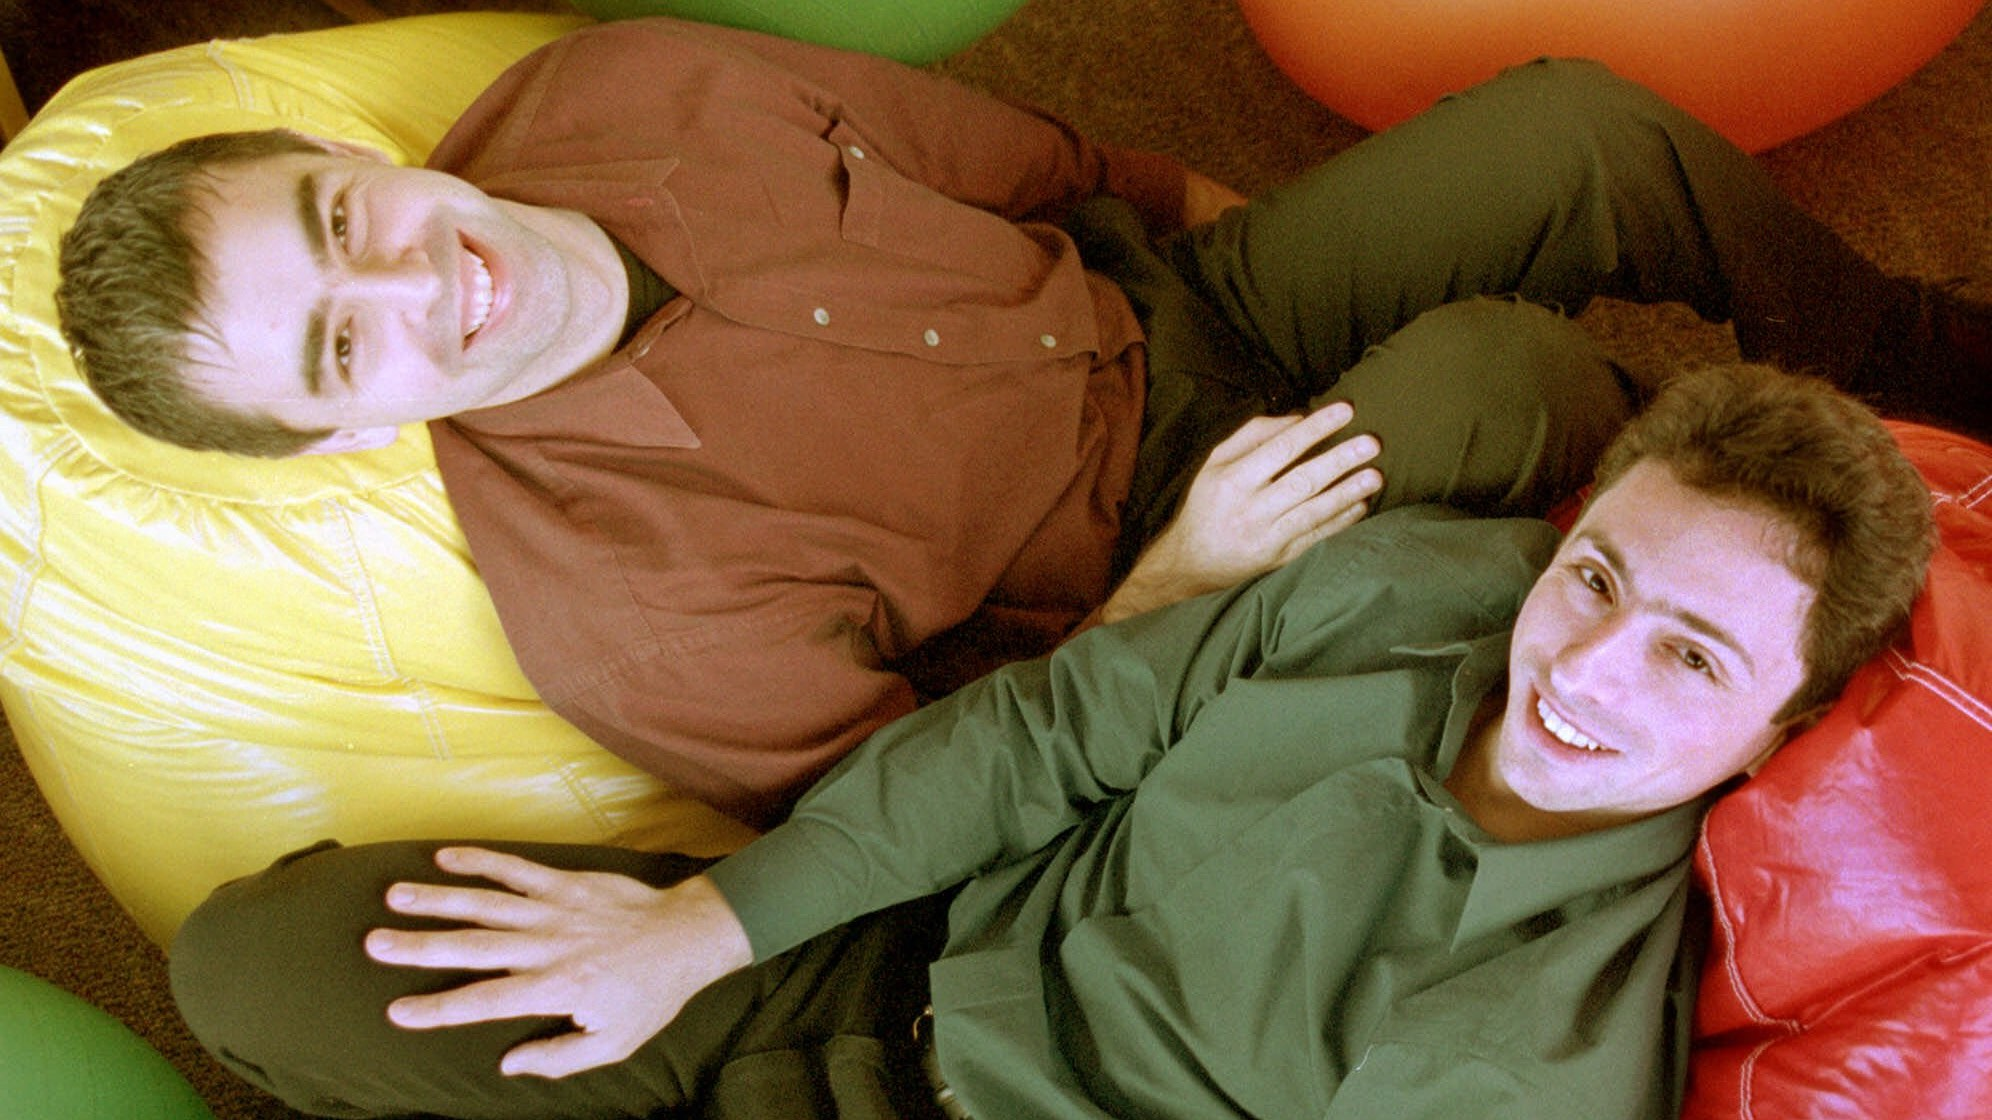 Google's co-founders, CEO Larry Page, left, and Chairman Sergey Brin, rest on bean bags at Google's headquarters on Friday, Nov. 11, 2000, in Mountain View, Calif. Google which replaced Inktomi as Yahoo's search engine in June is one of the few search engines that shuns pay-for-position and pay-for-inclusion. Google executives say those formulas make it more difficult for people to find potentially valuable information, like cancer research, on the Web. ``We have taken a very strong stance that our search results represent our editorial integrity,'' said Google CEO Larry Page.(AP Photo/Randi Lynn Beach)